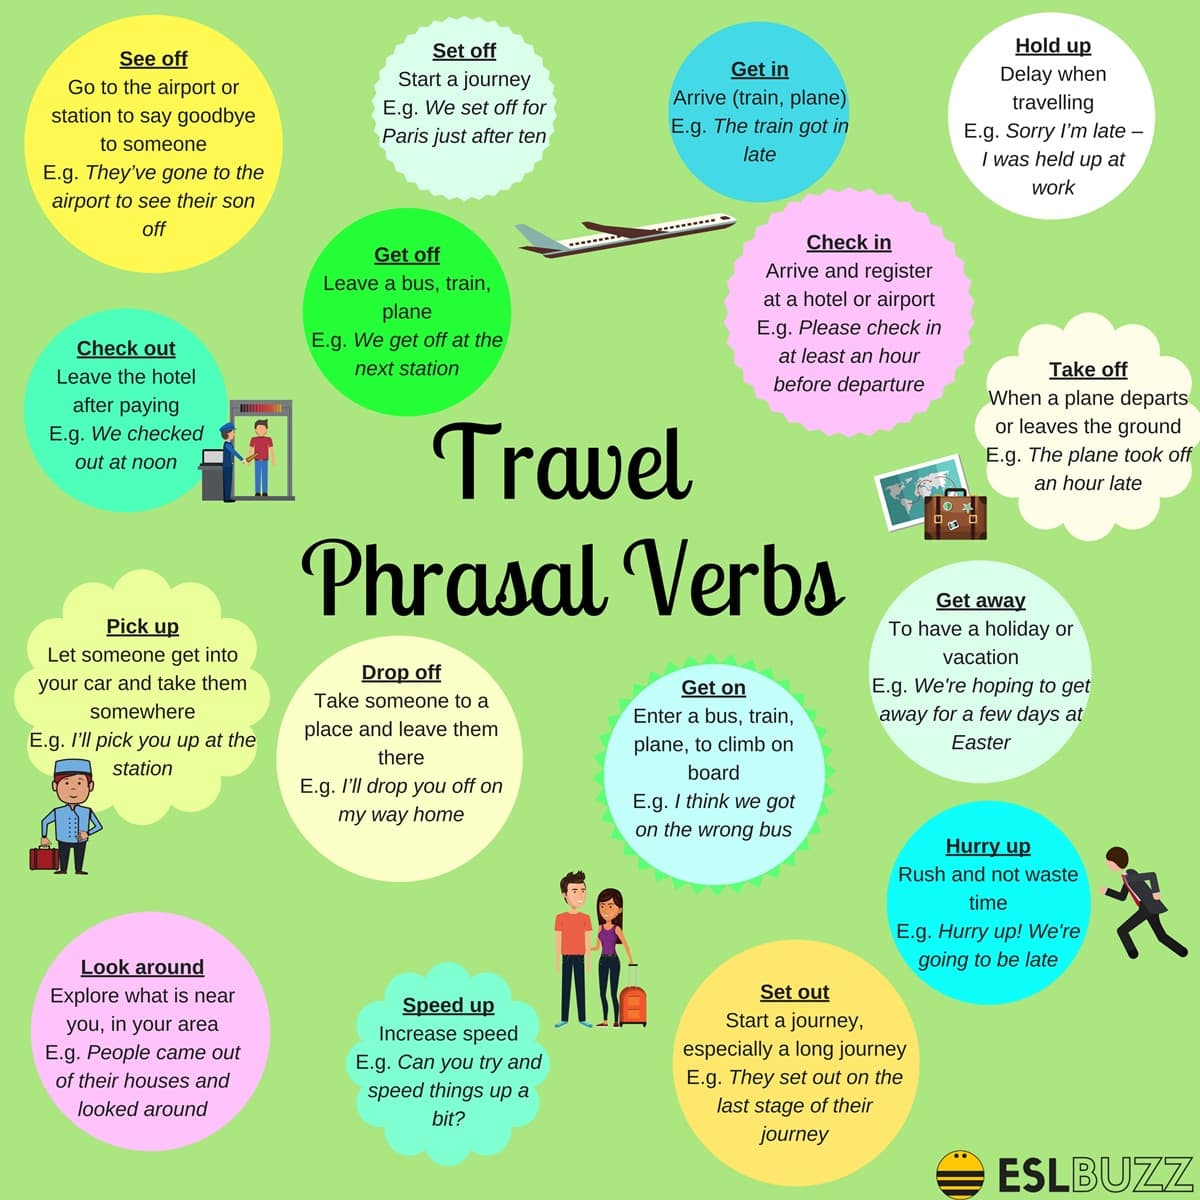 Travel Phrasal Verbs and Expressions in English 14